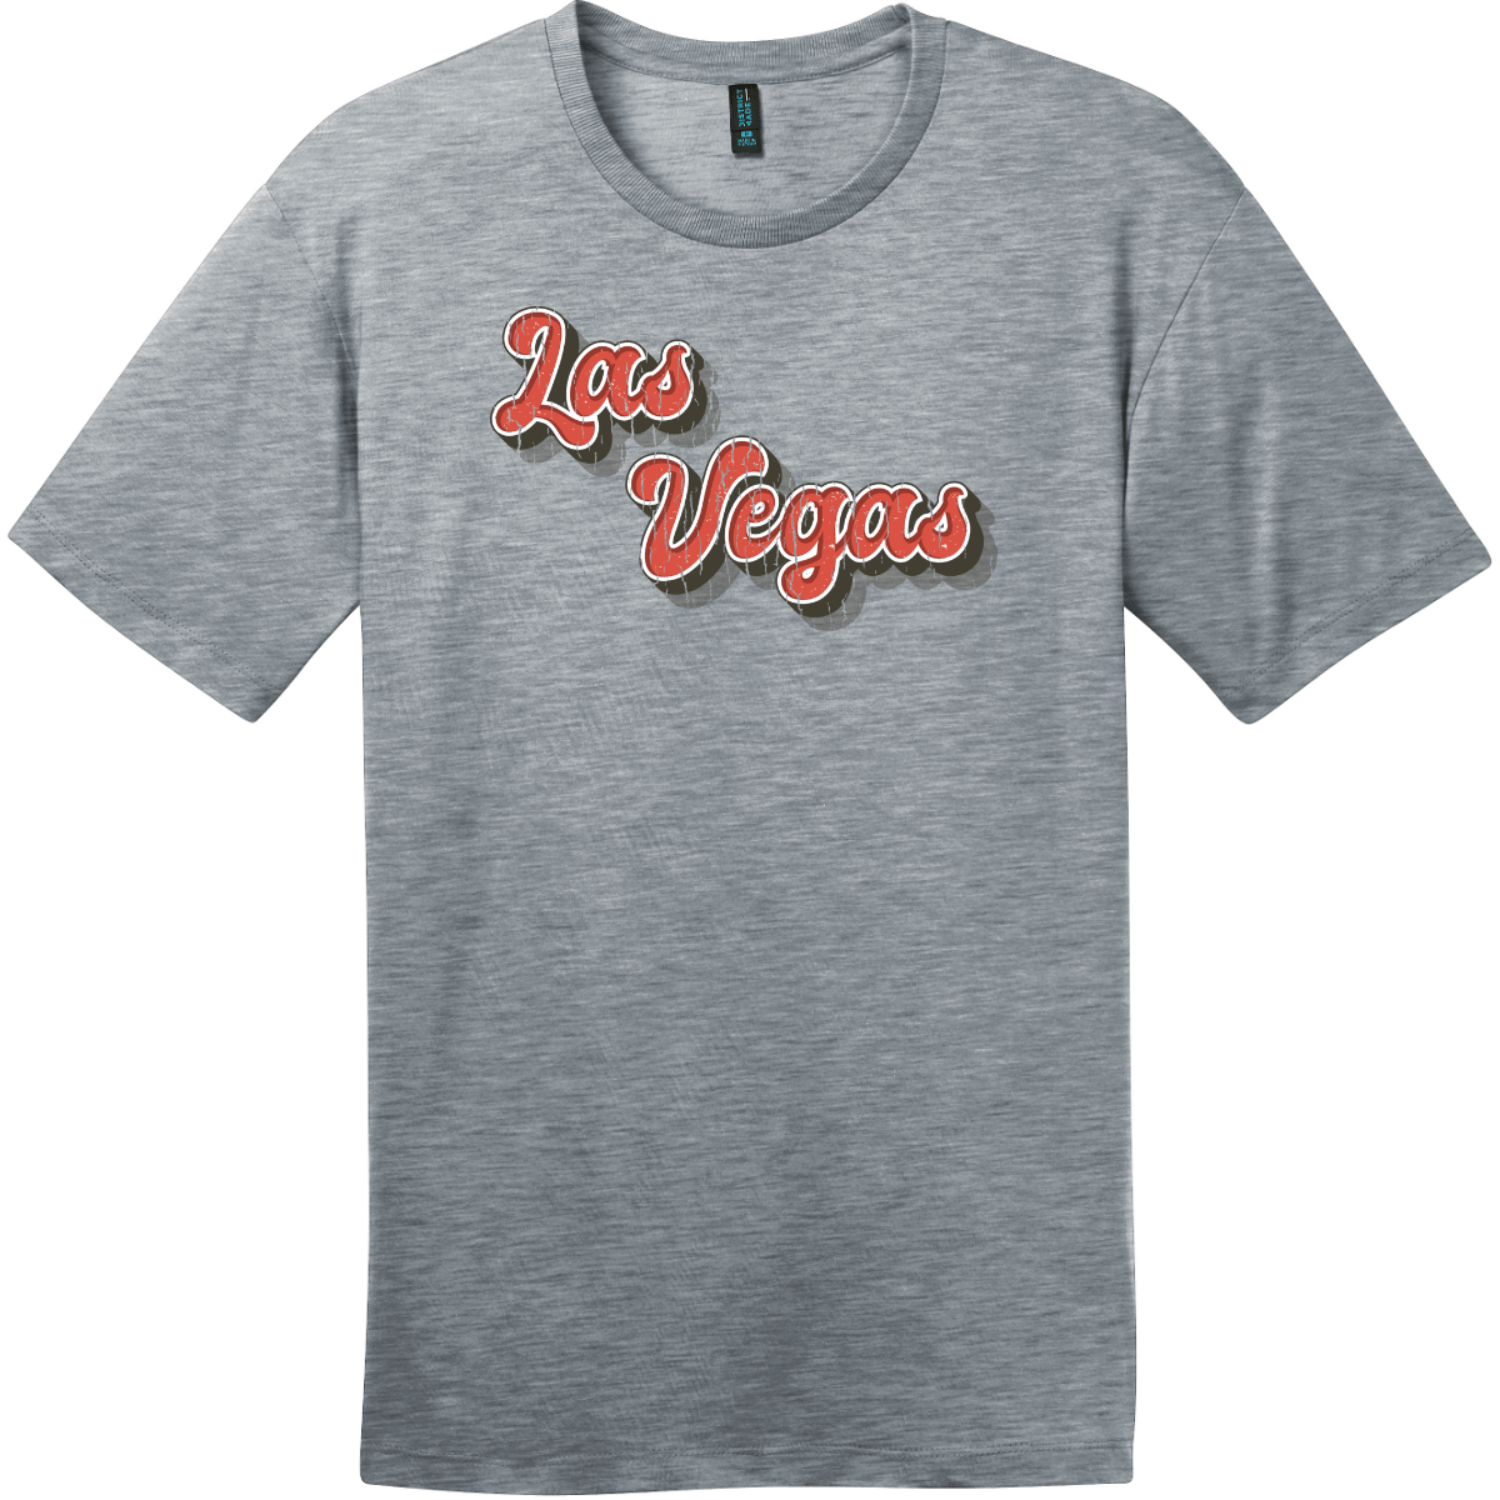 Las Vegas Retro Font T-Shirt Heathered Steel District Perfect Weight Tee DT104